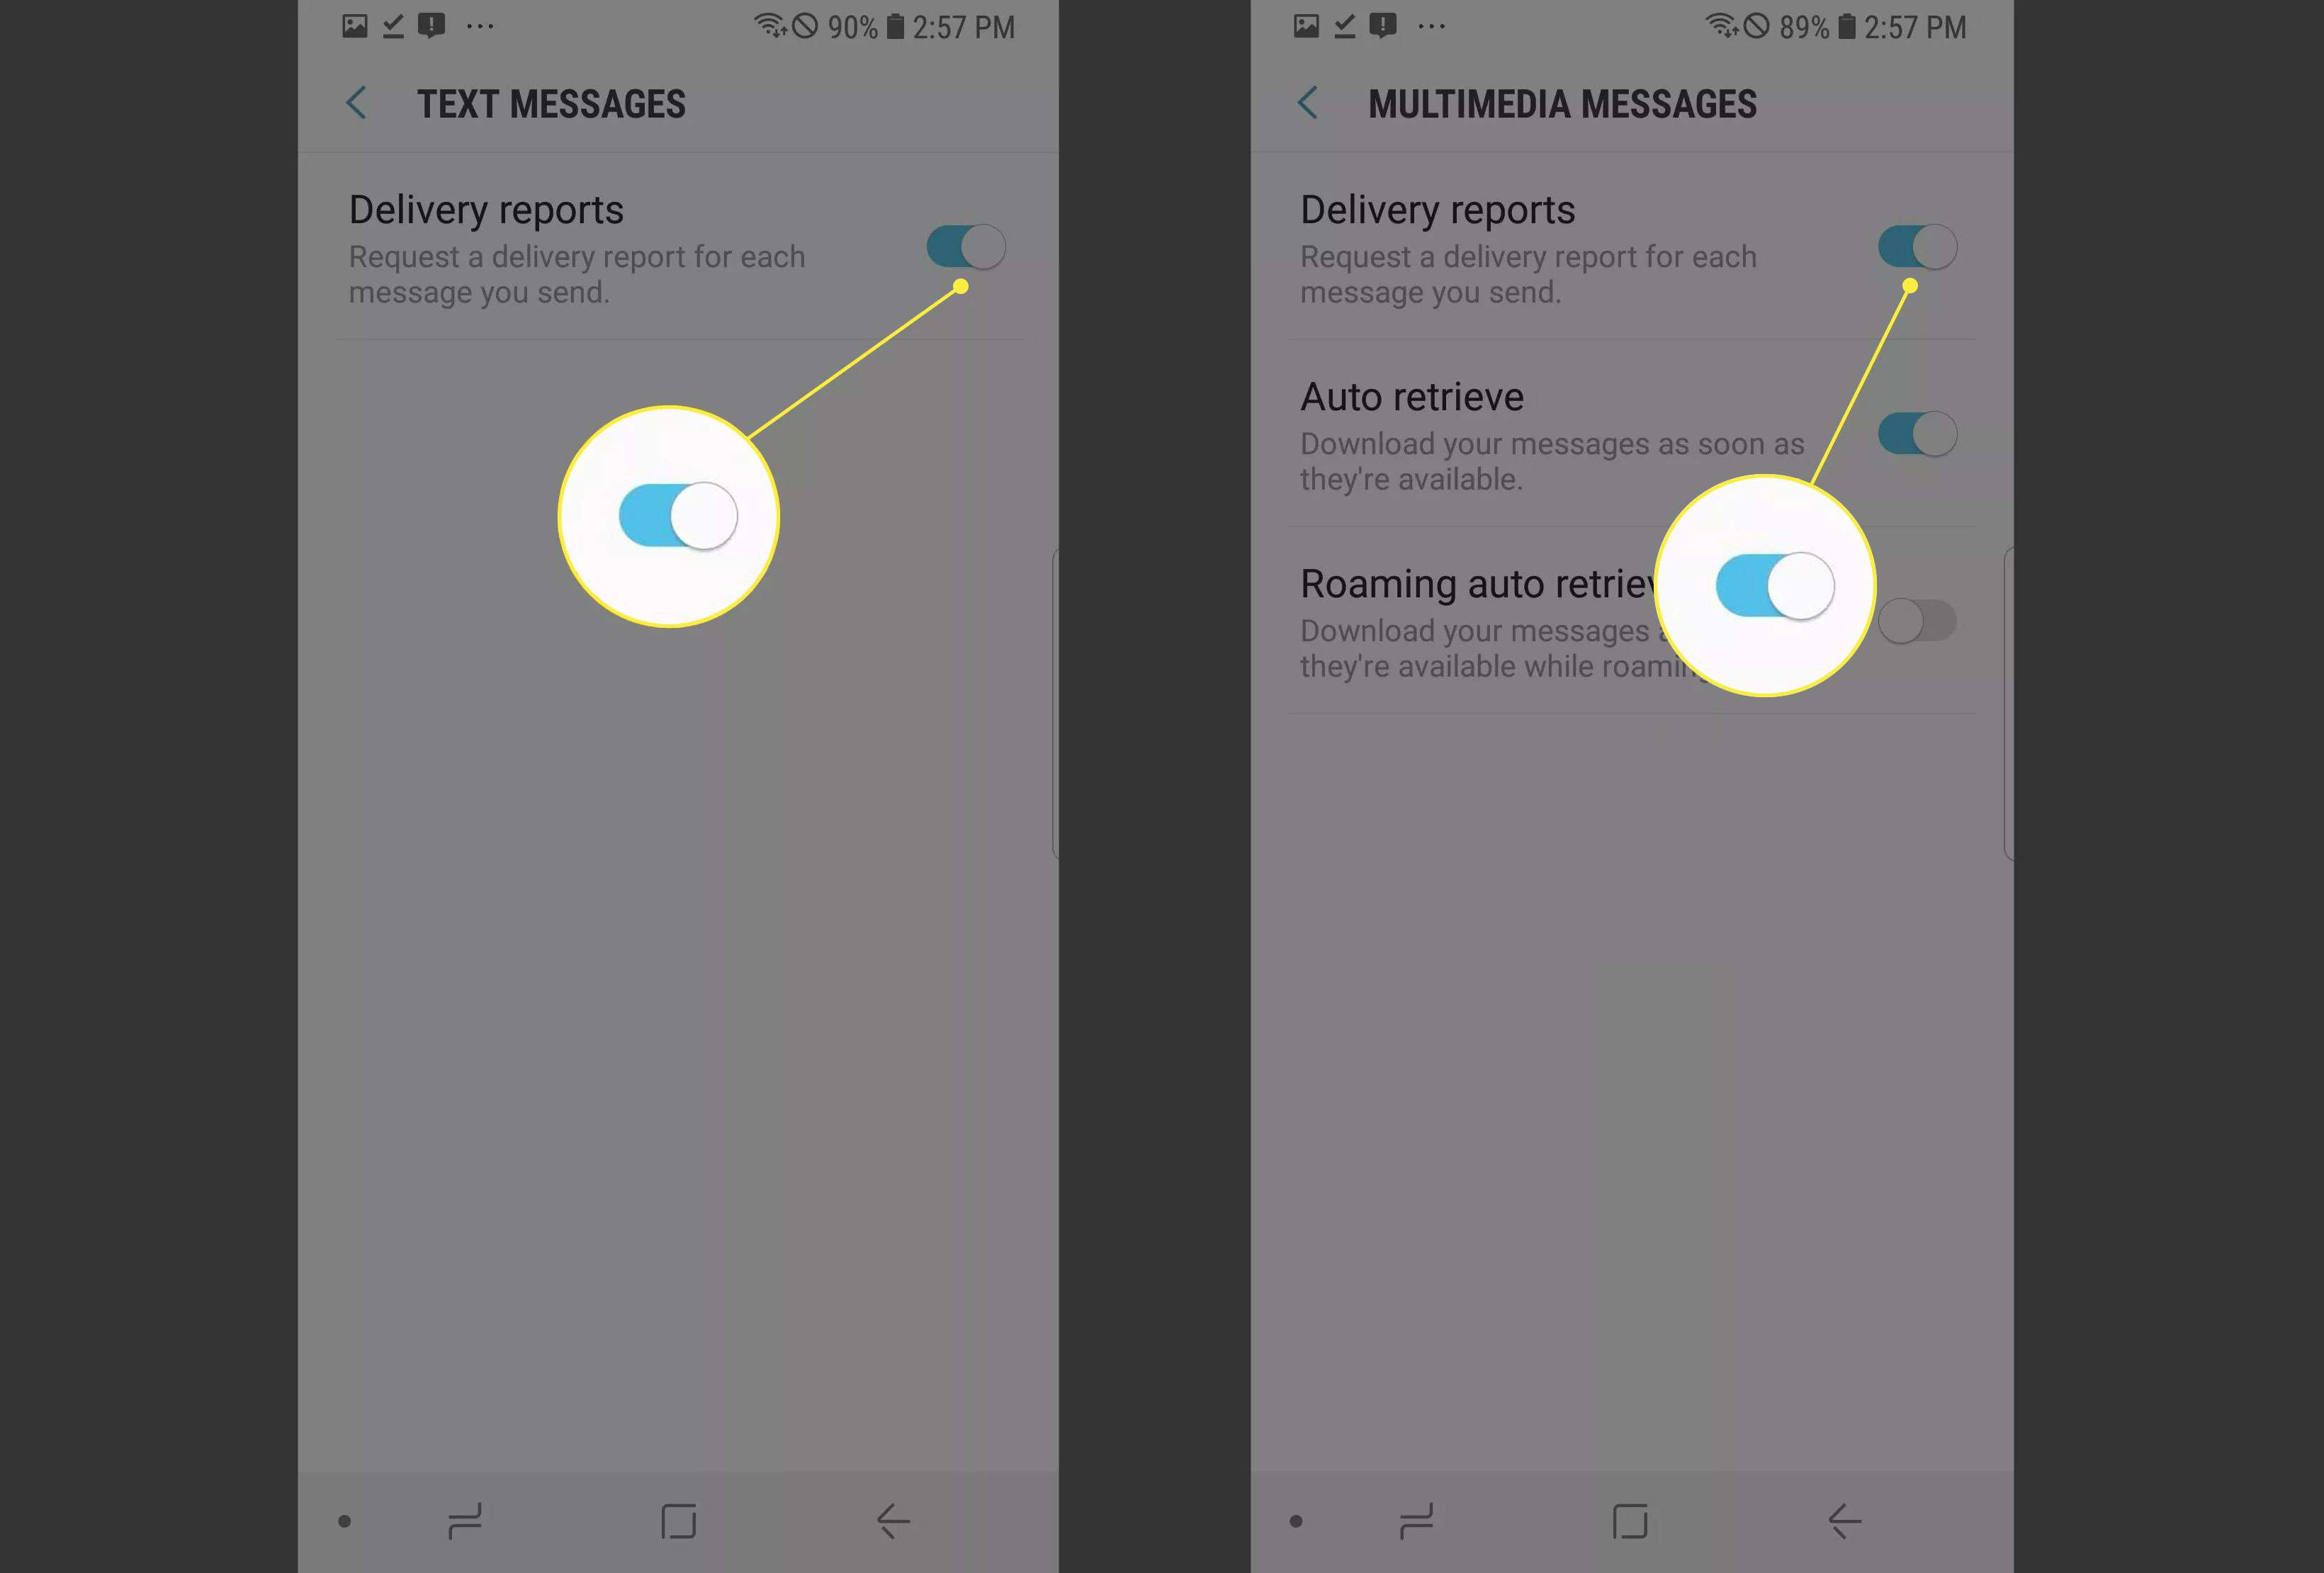 Delivery reports in Android